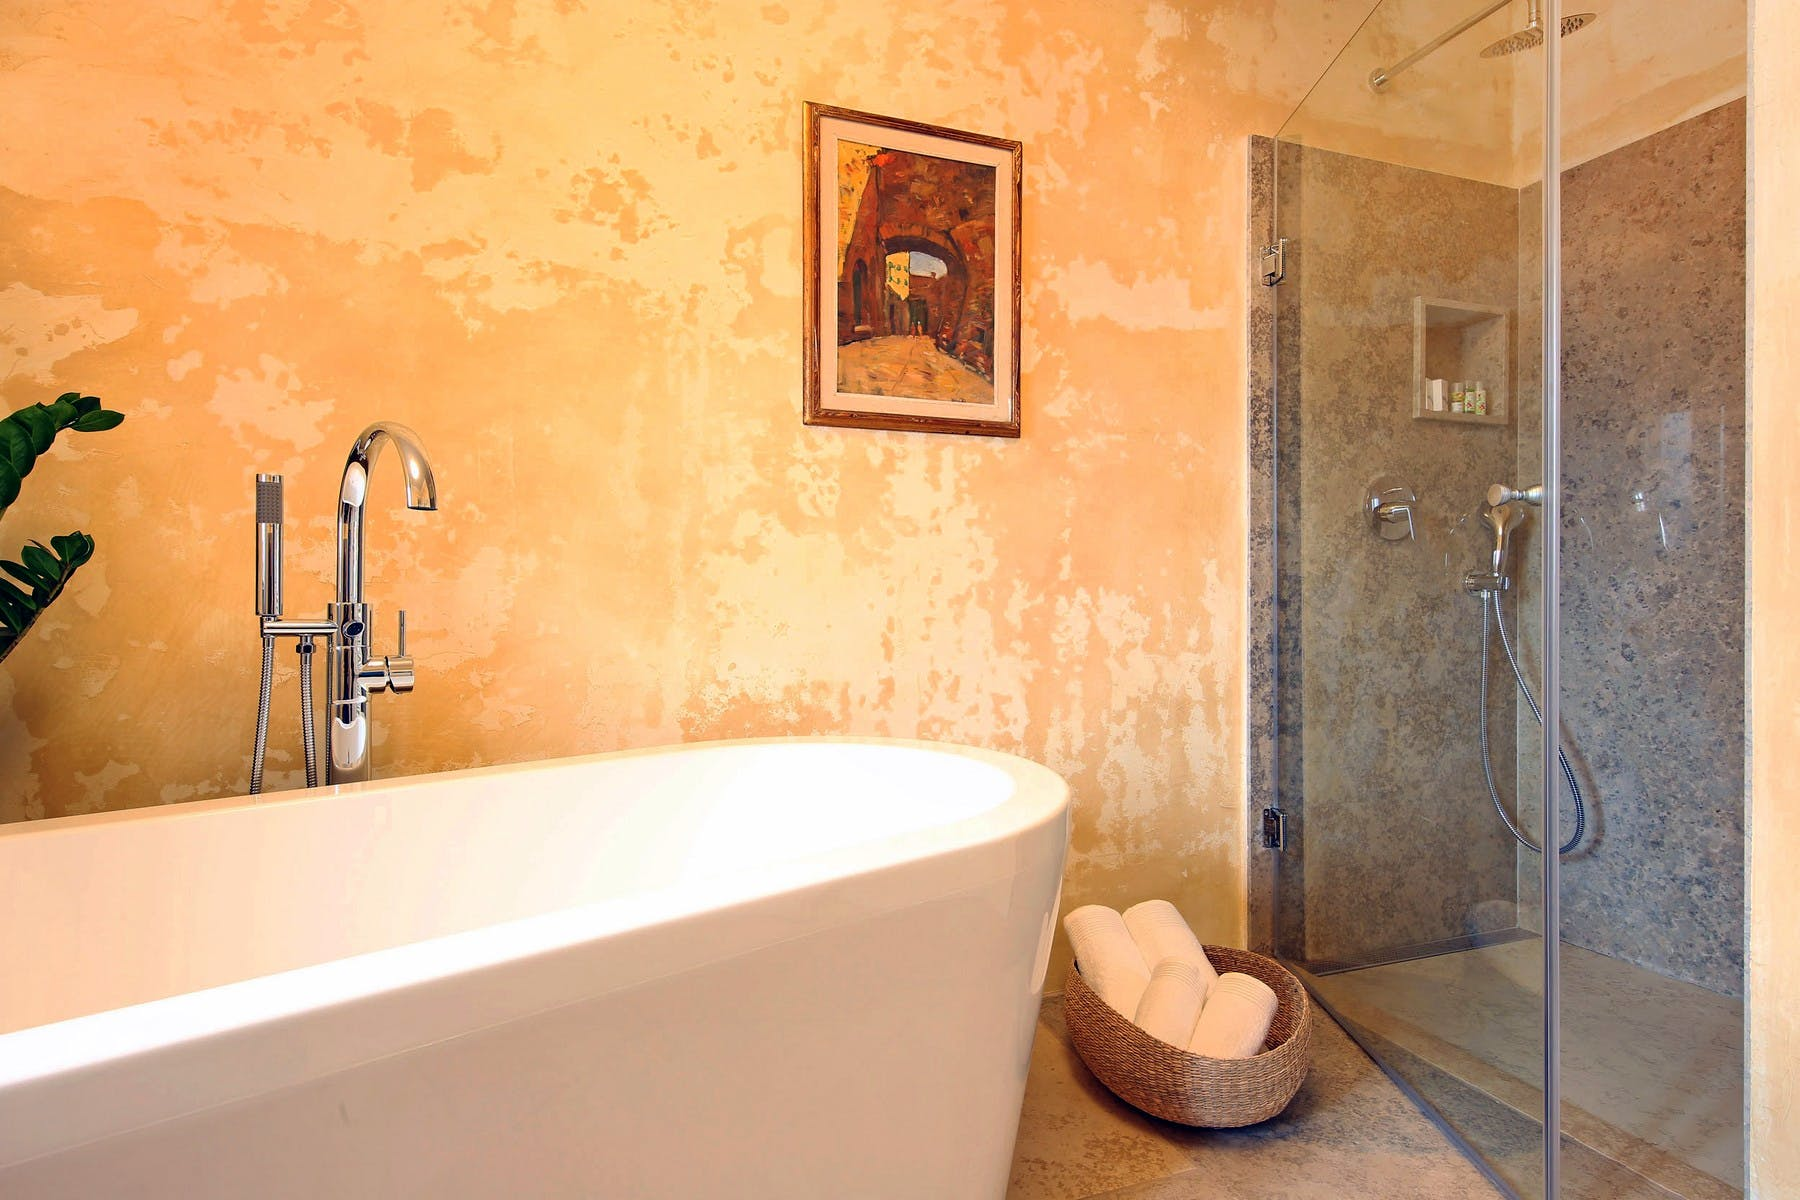 Bathroom details and amenities